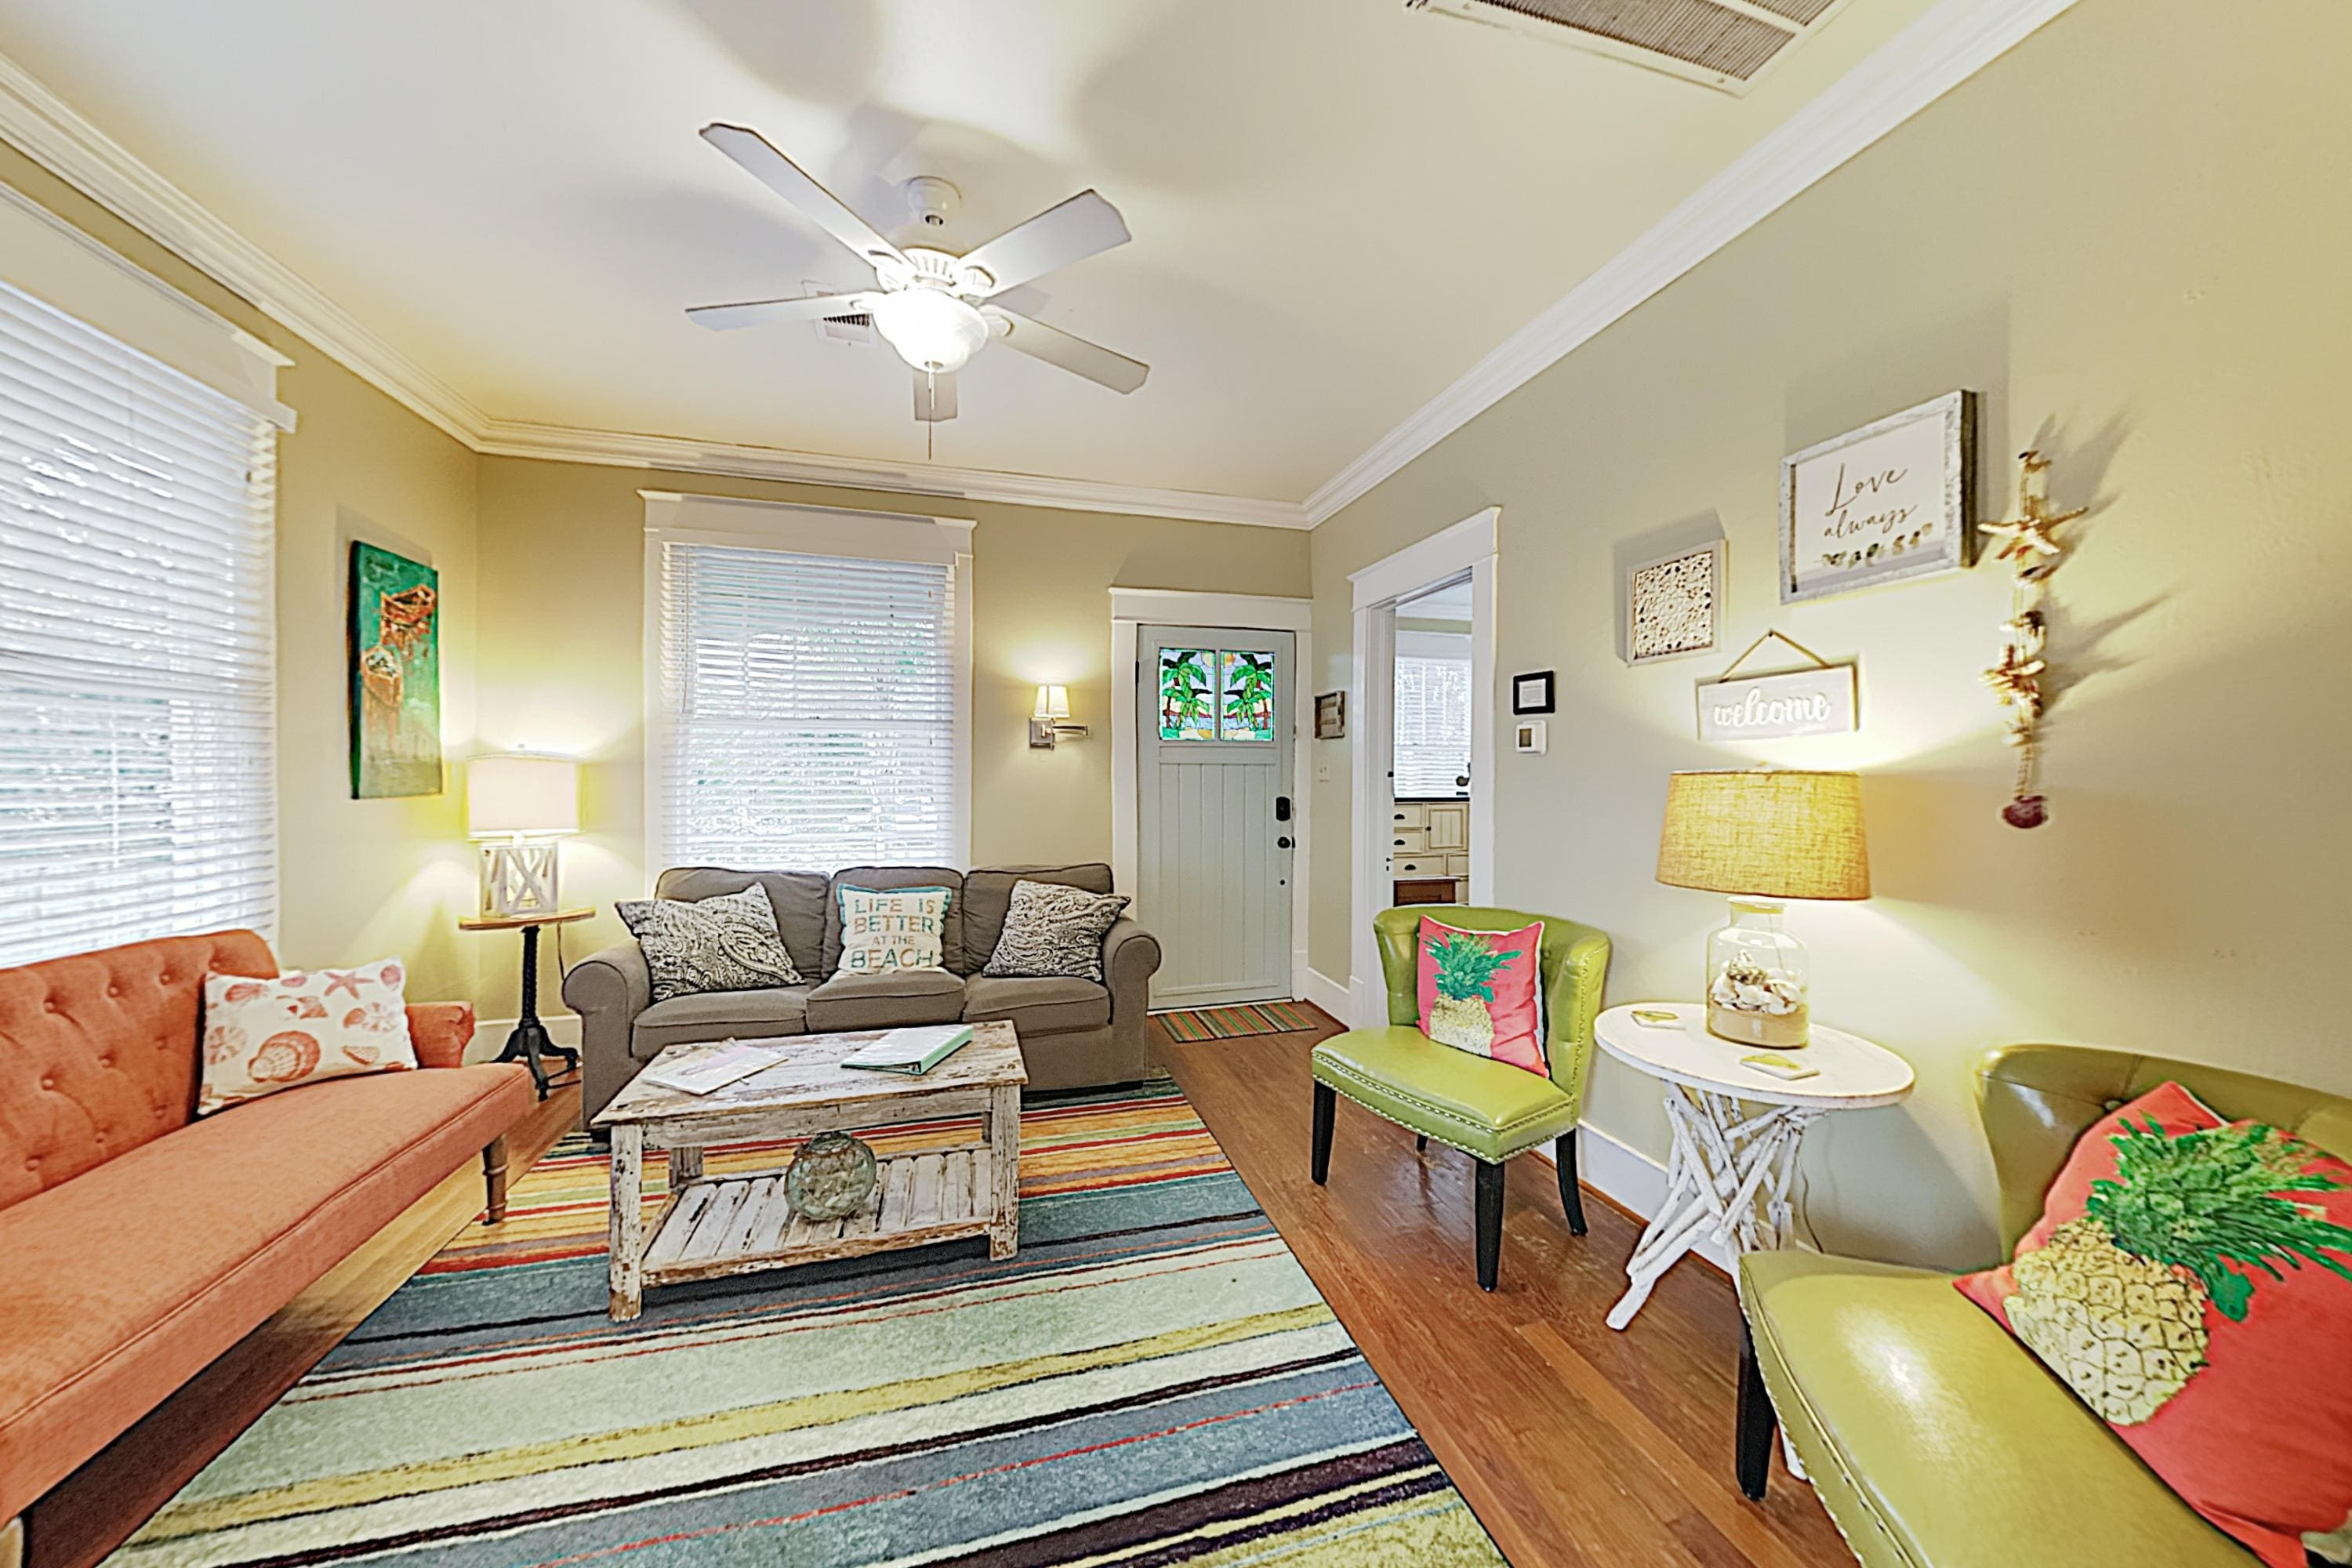 The living room is furnished with a sleeper sofa, love seat, and 2 chairs.